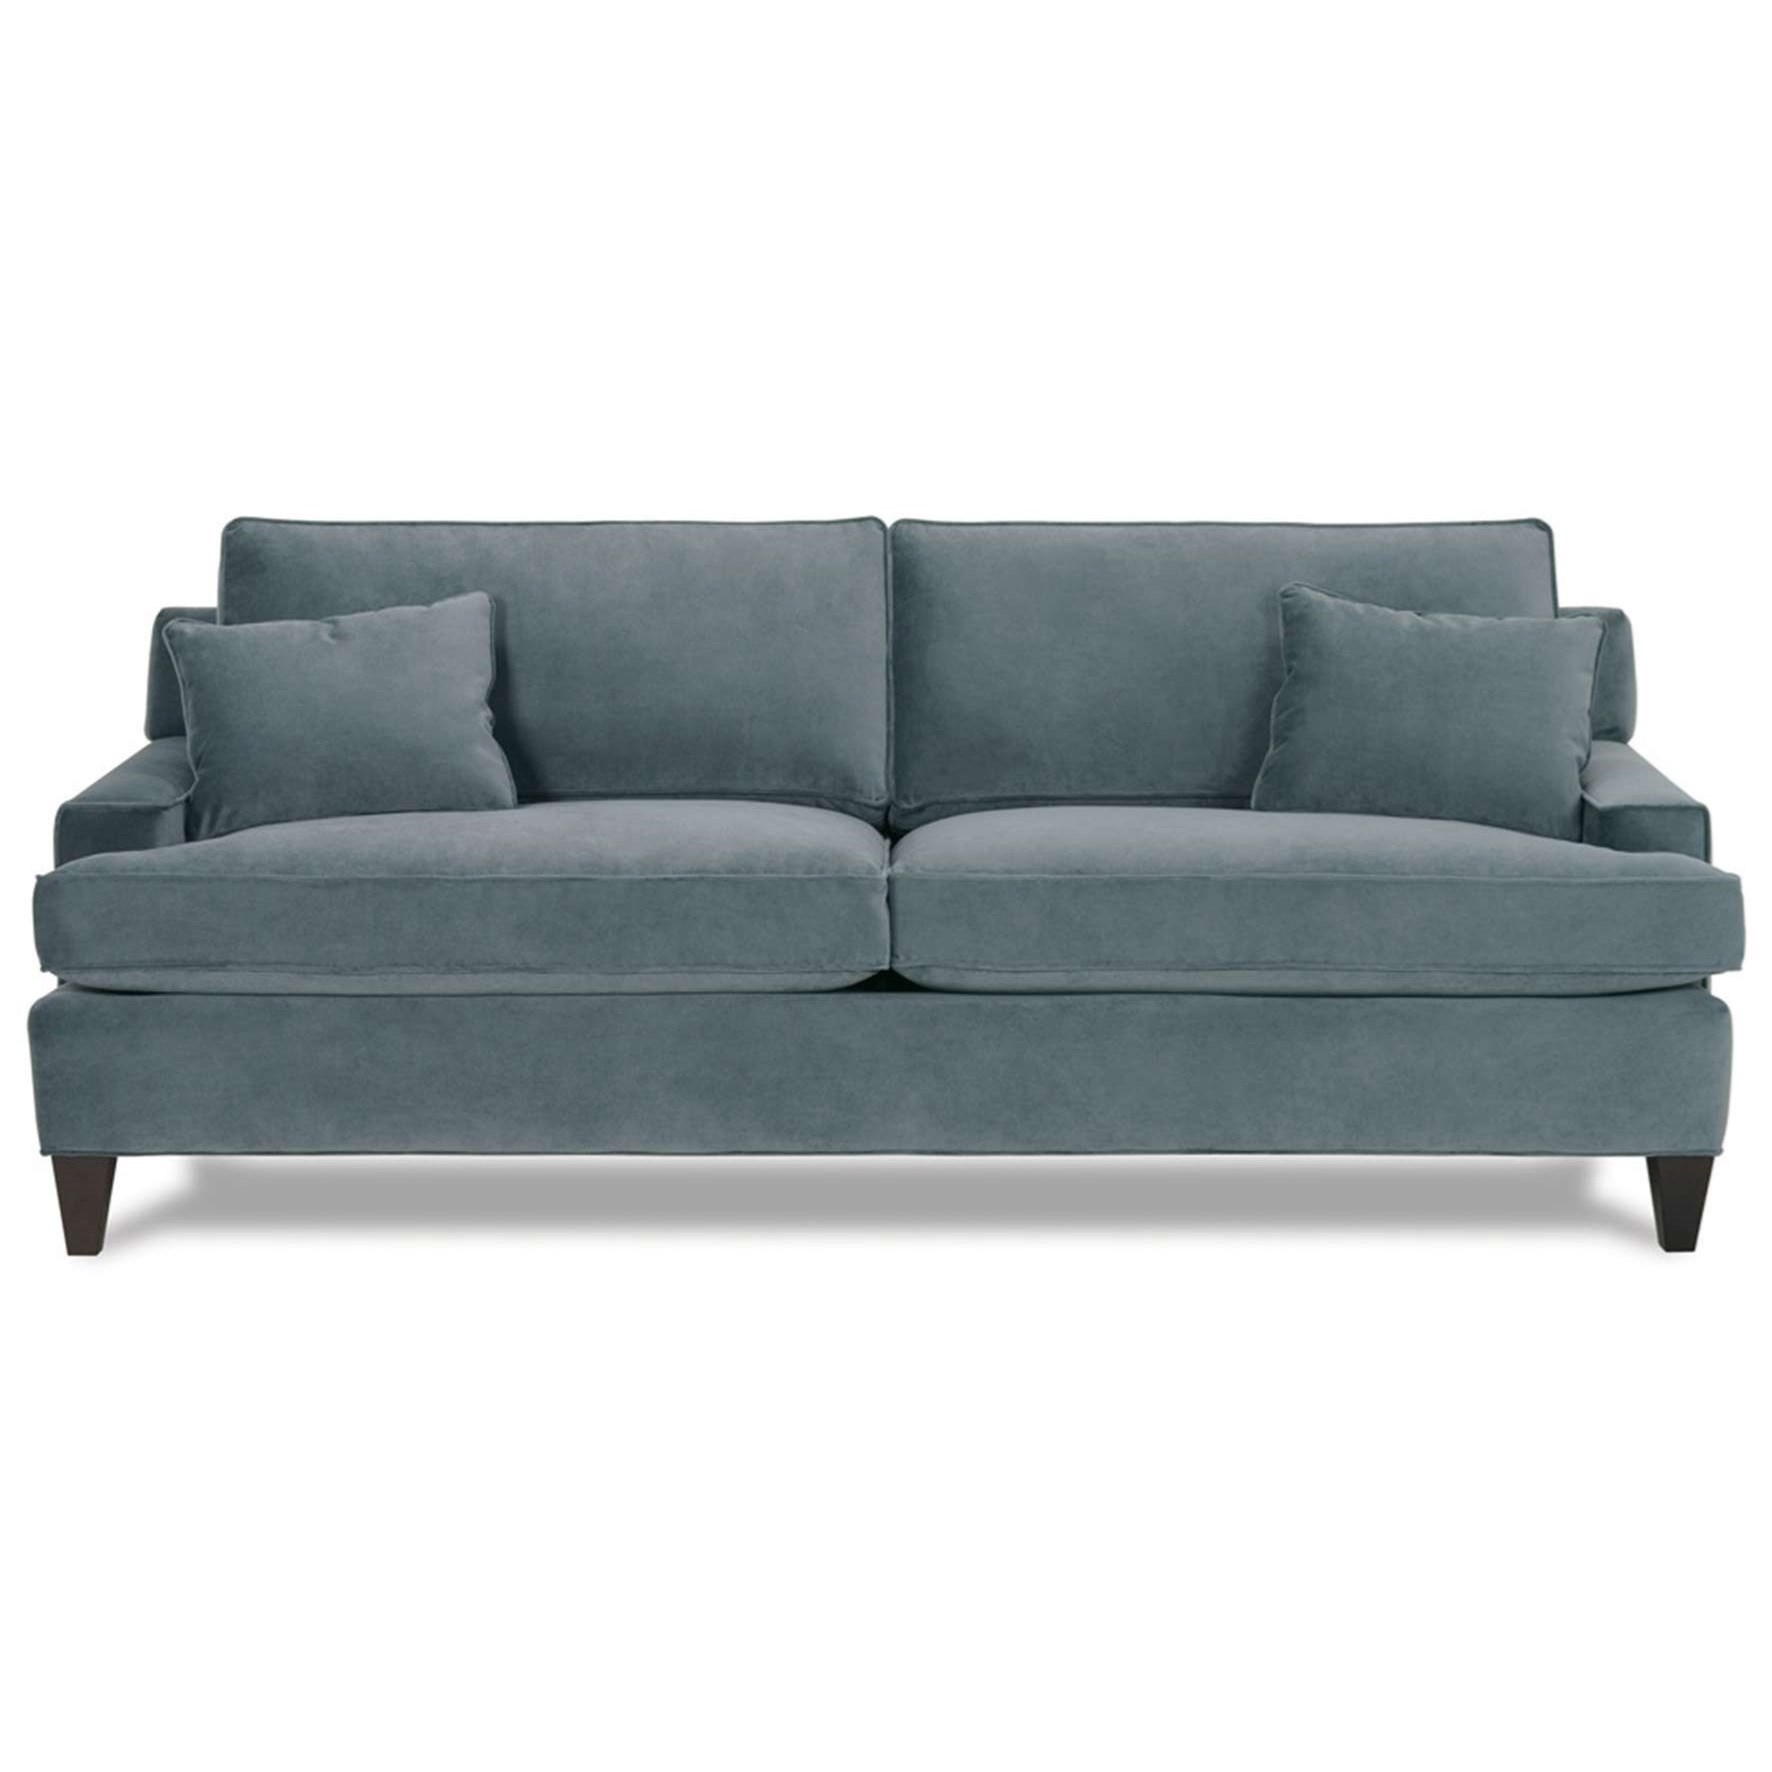 Chelsey Sofa Sleeper by Rowe at Baer's Furniture